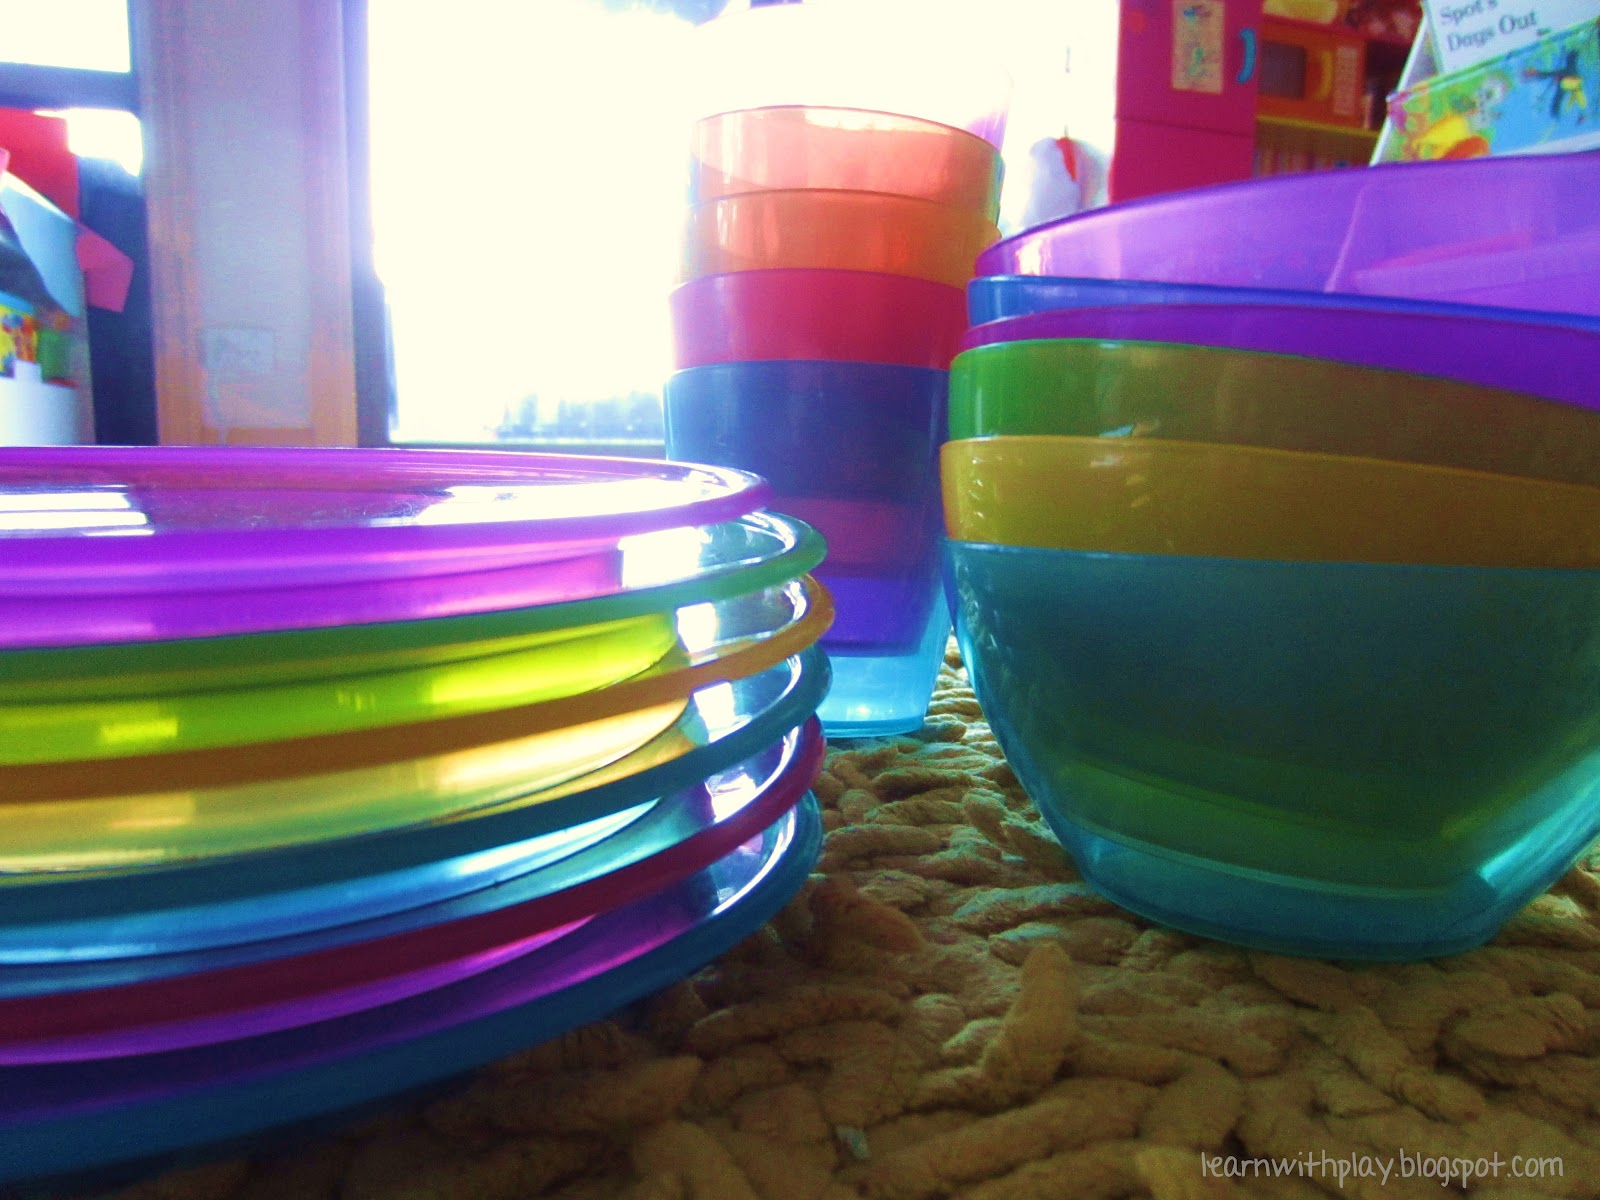 You will need some plastic plates cups ... & Learn with Play at Home: Building with Plastic Plates Cups and Bowls